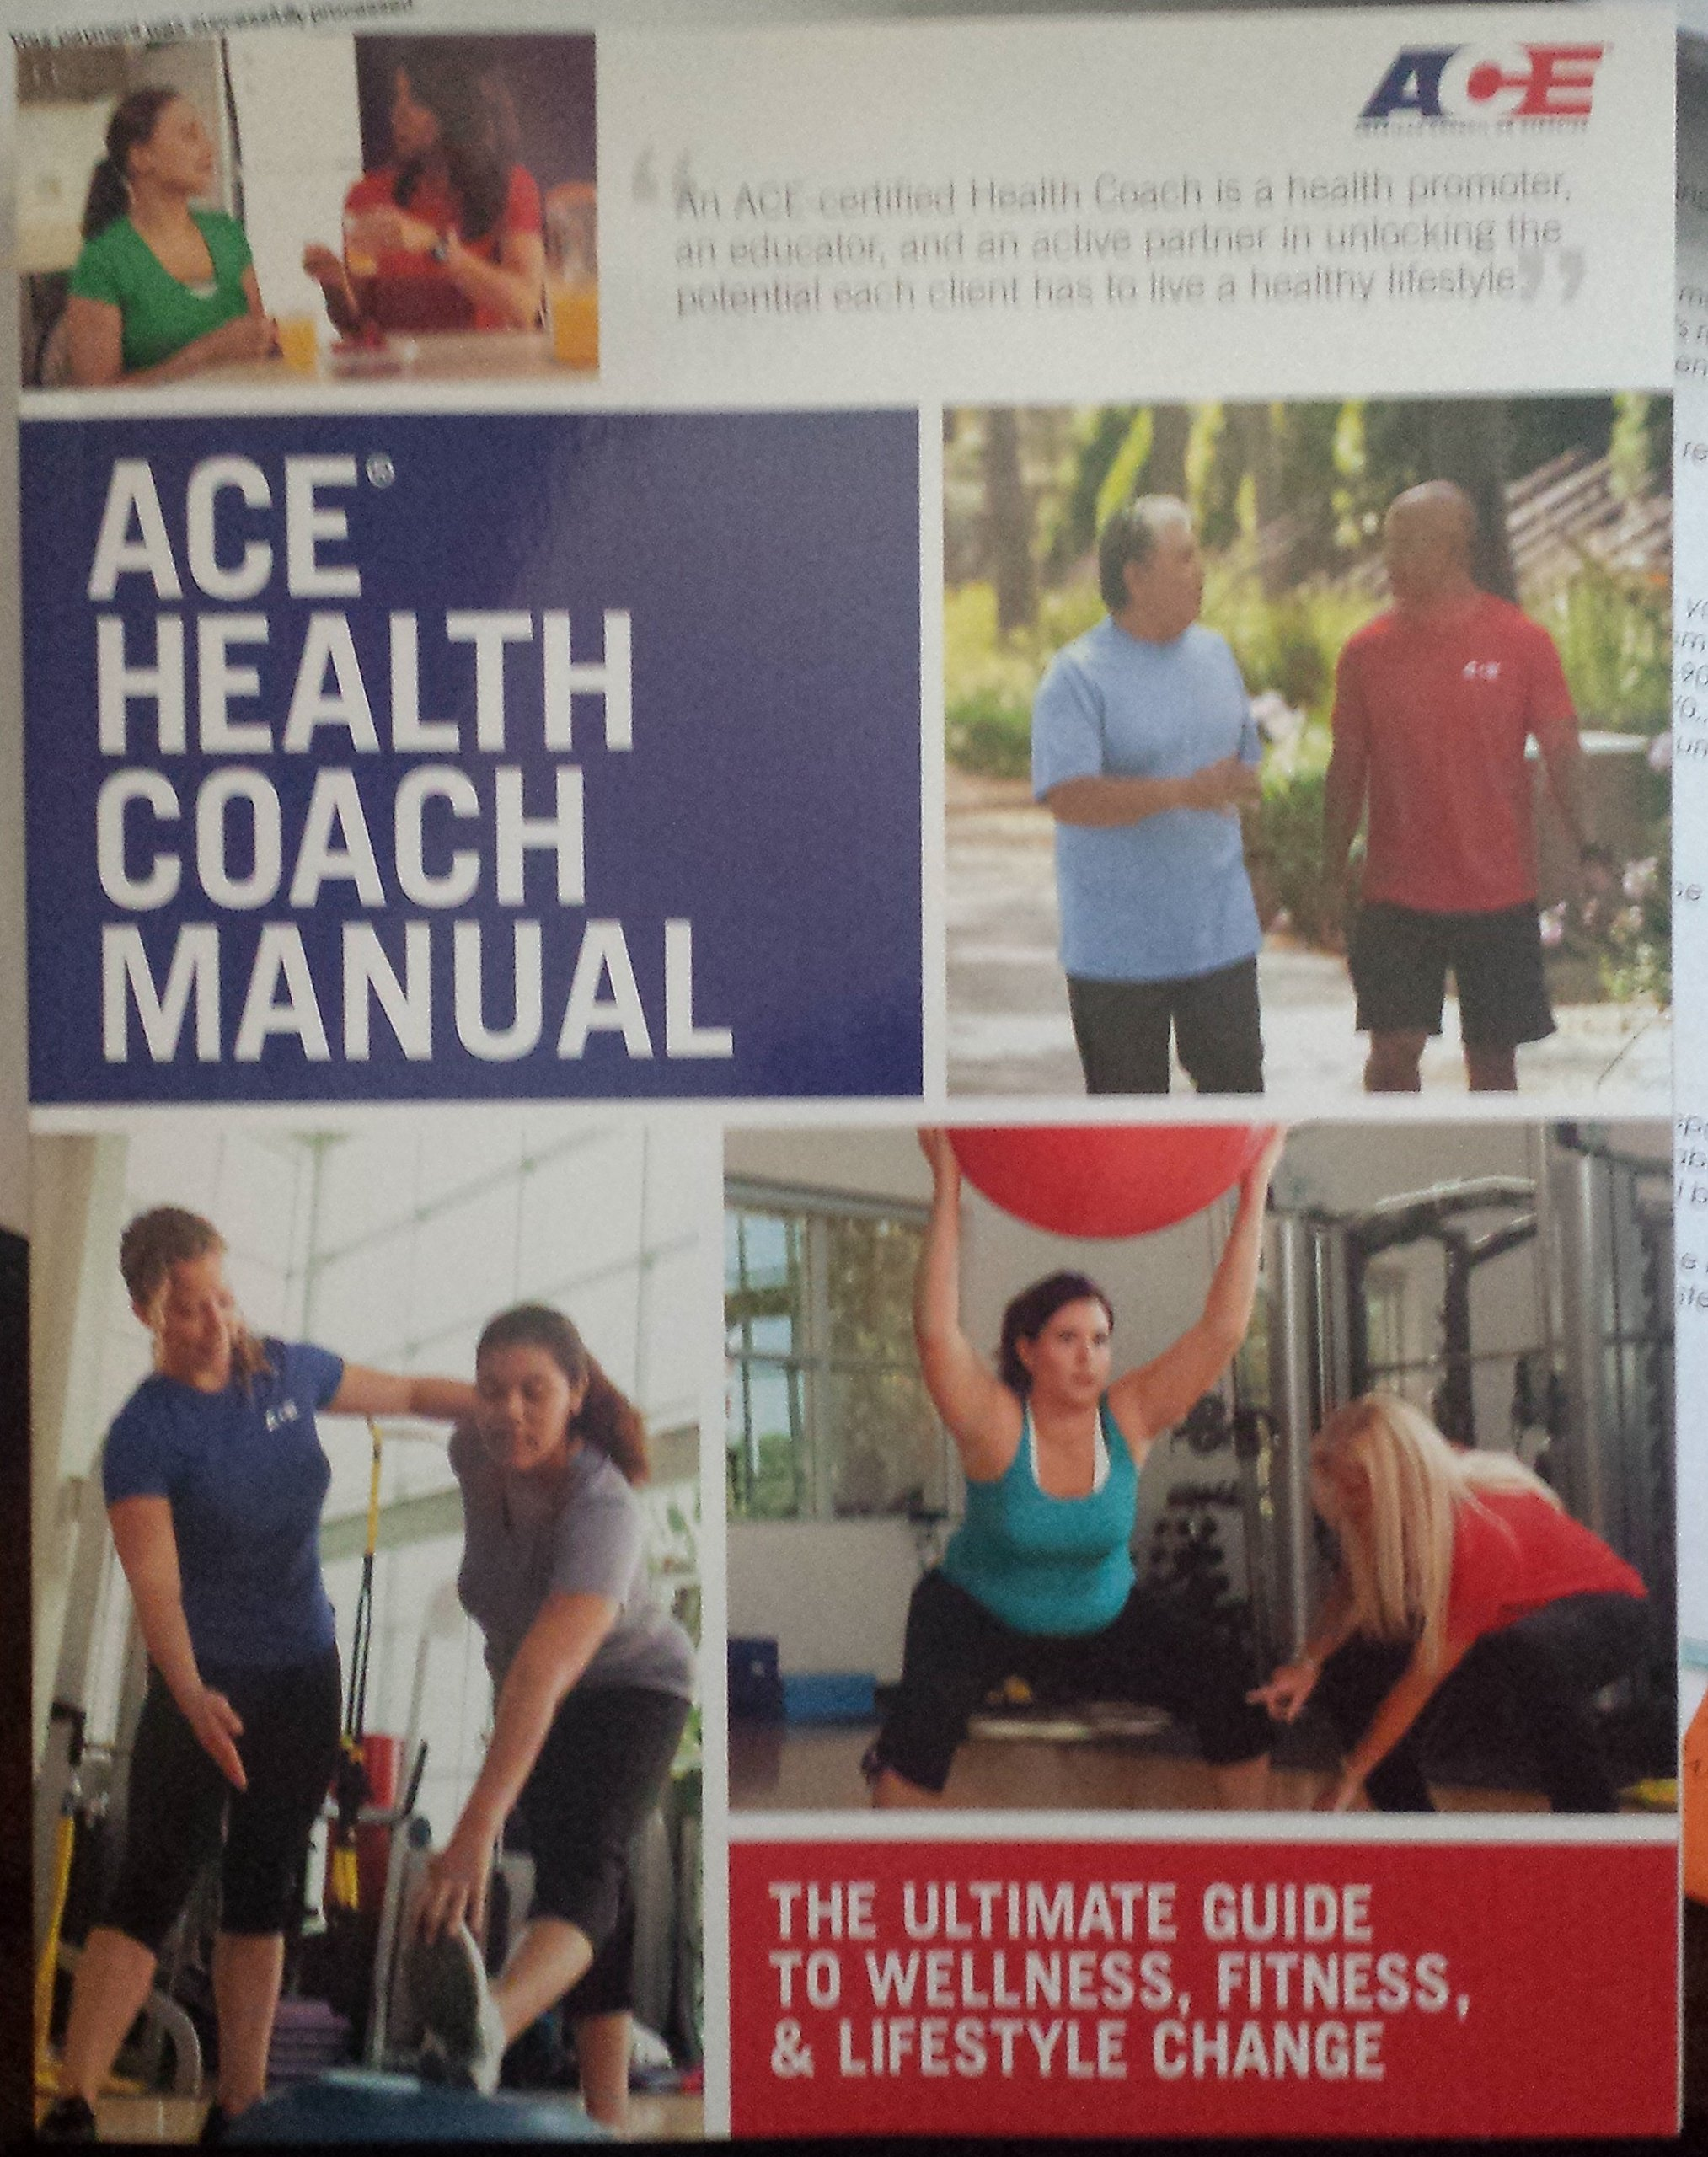 ace health coach manual american council of exercise contributor rh amazon com ace health coach manual free pdf ace health coach manual table of contents